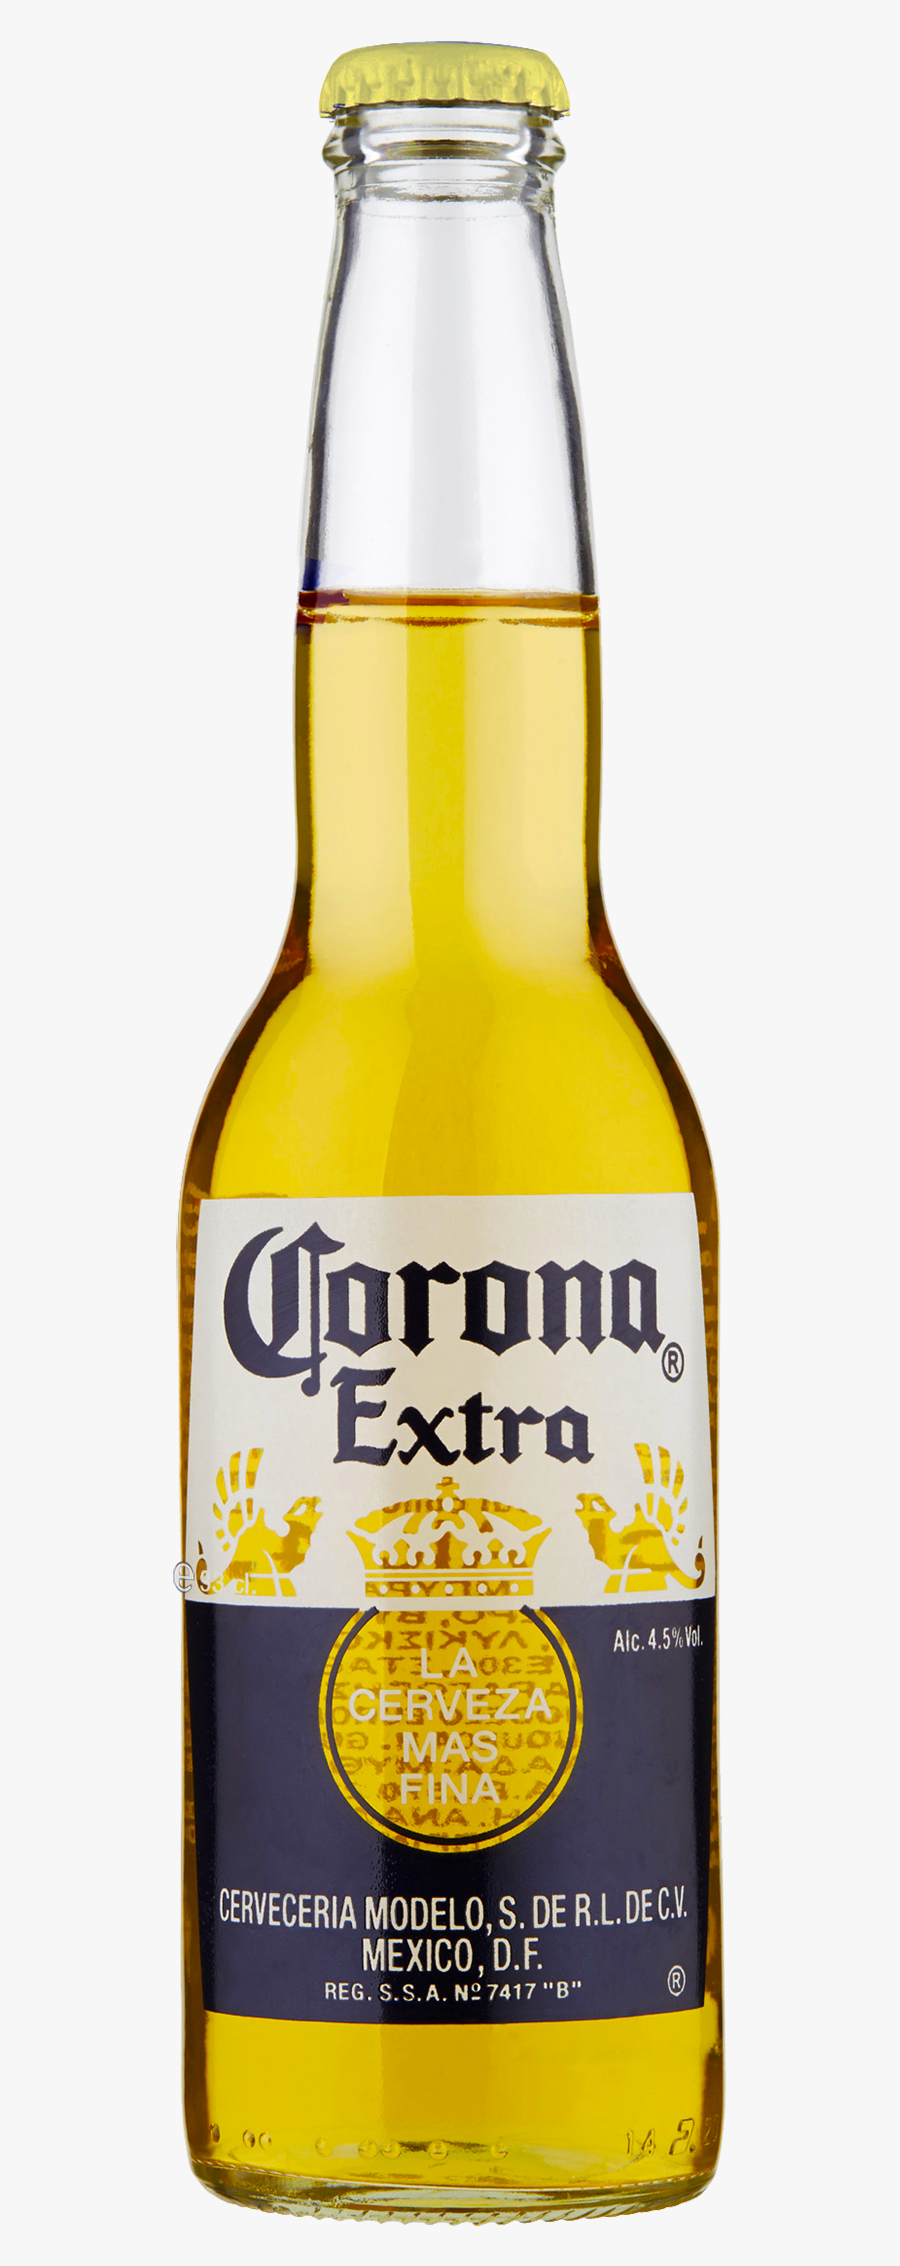 Corona Extra Beer Bottle - Corona Extra Beer Png, Transparent Clipart